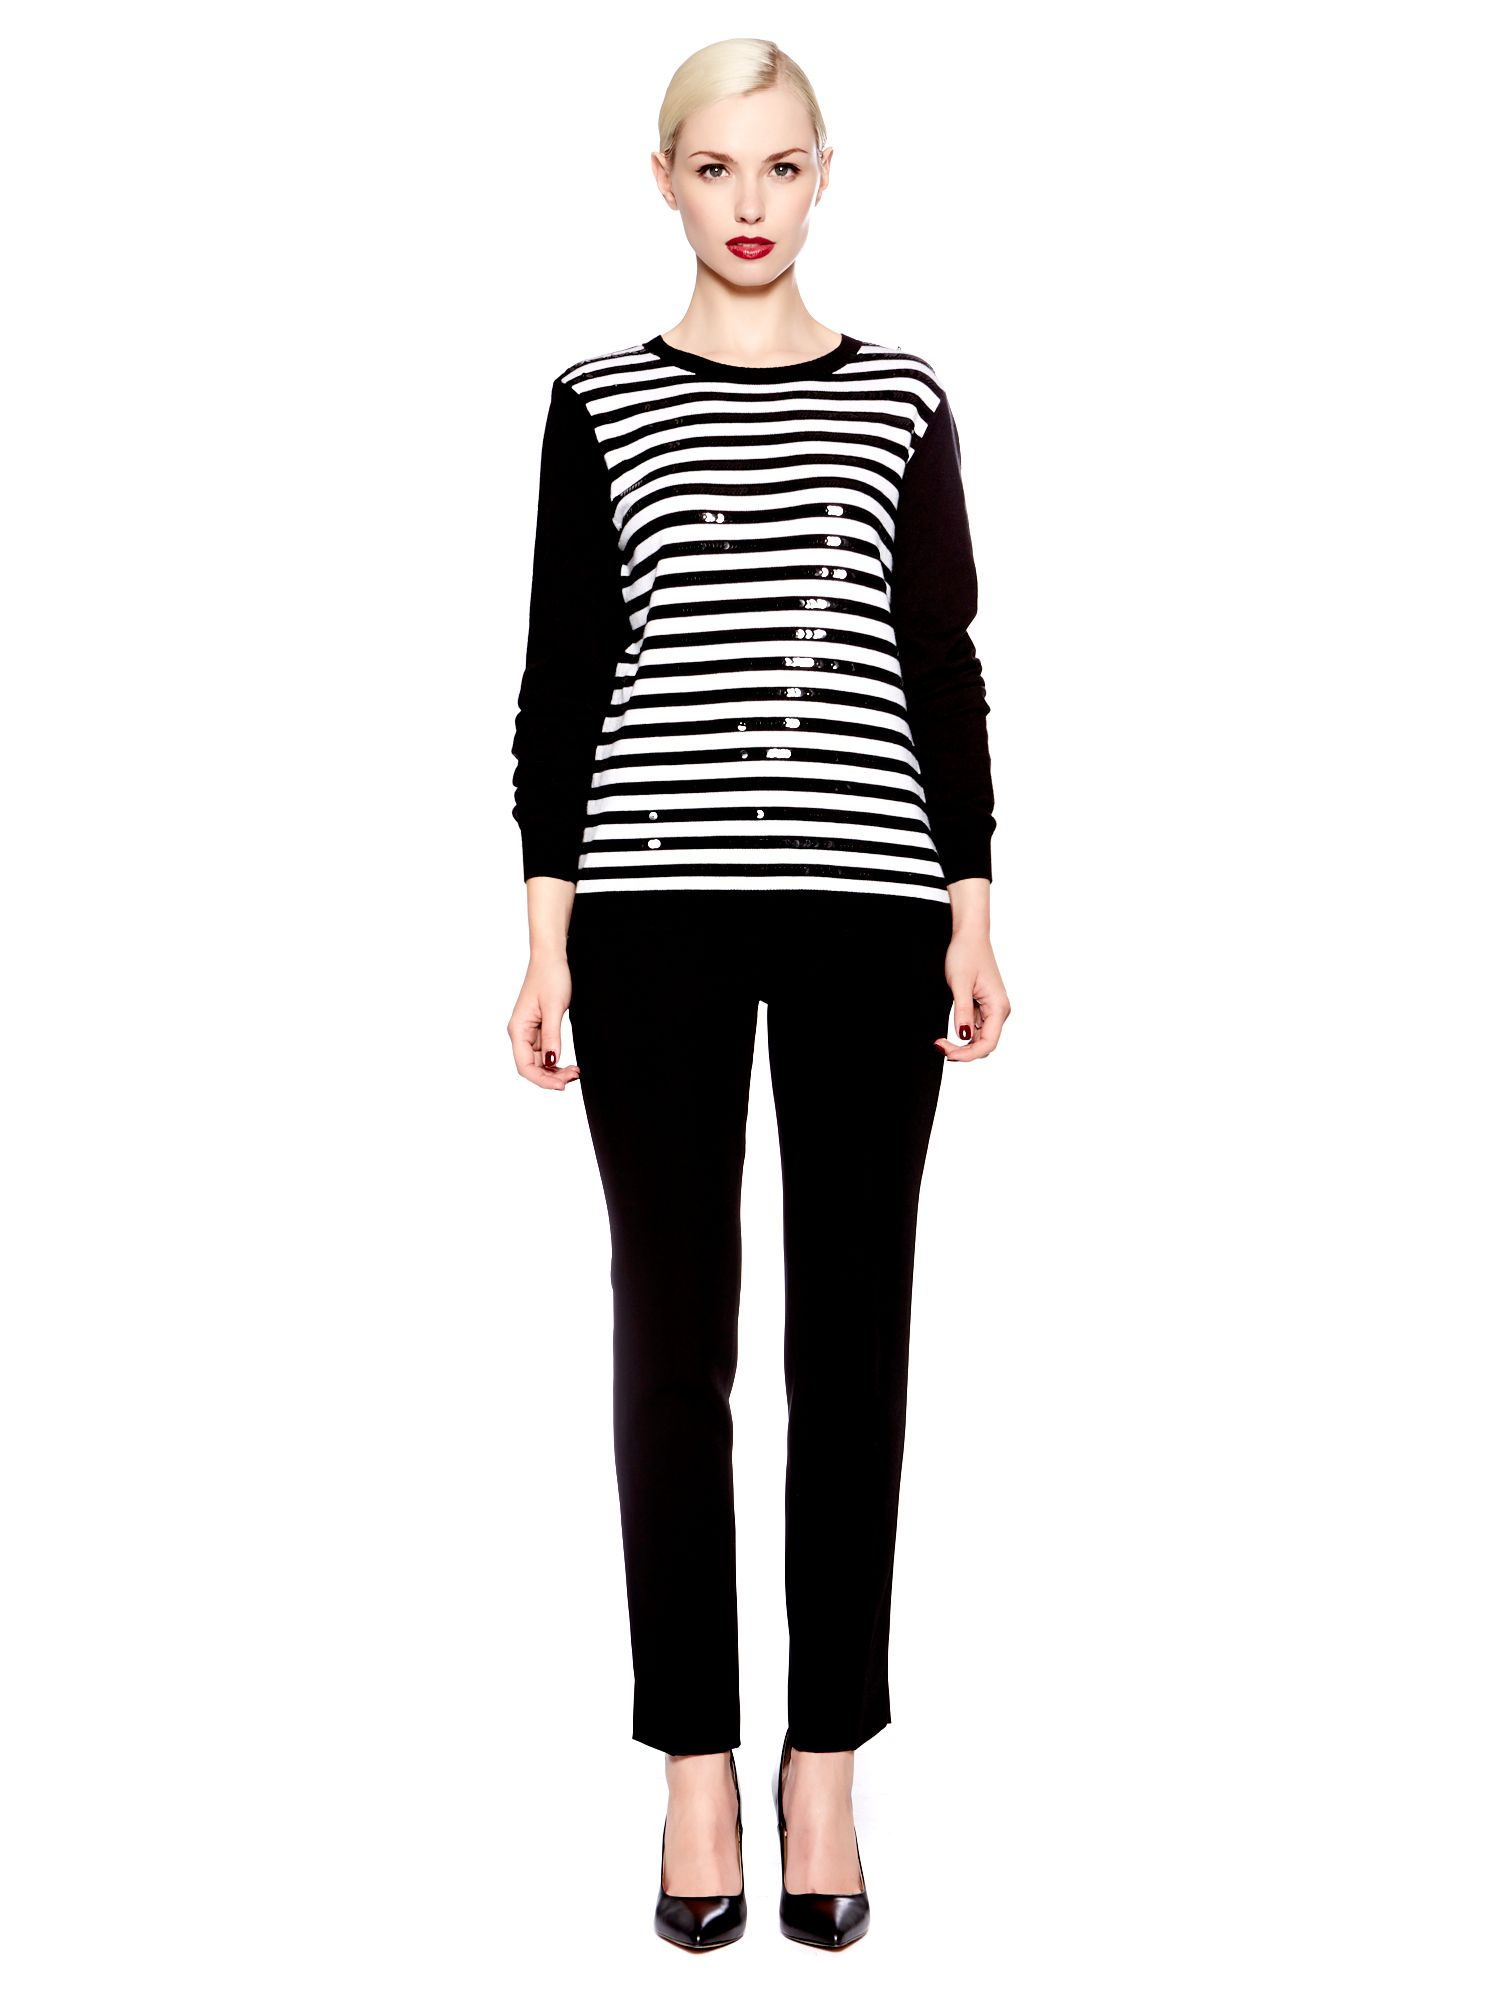 Panda stripe crew knit